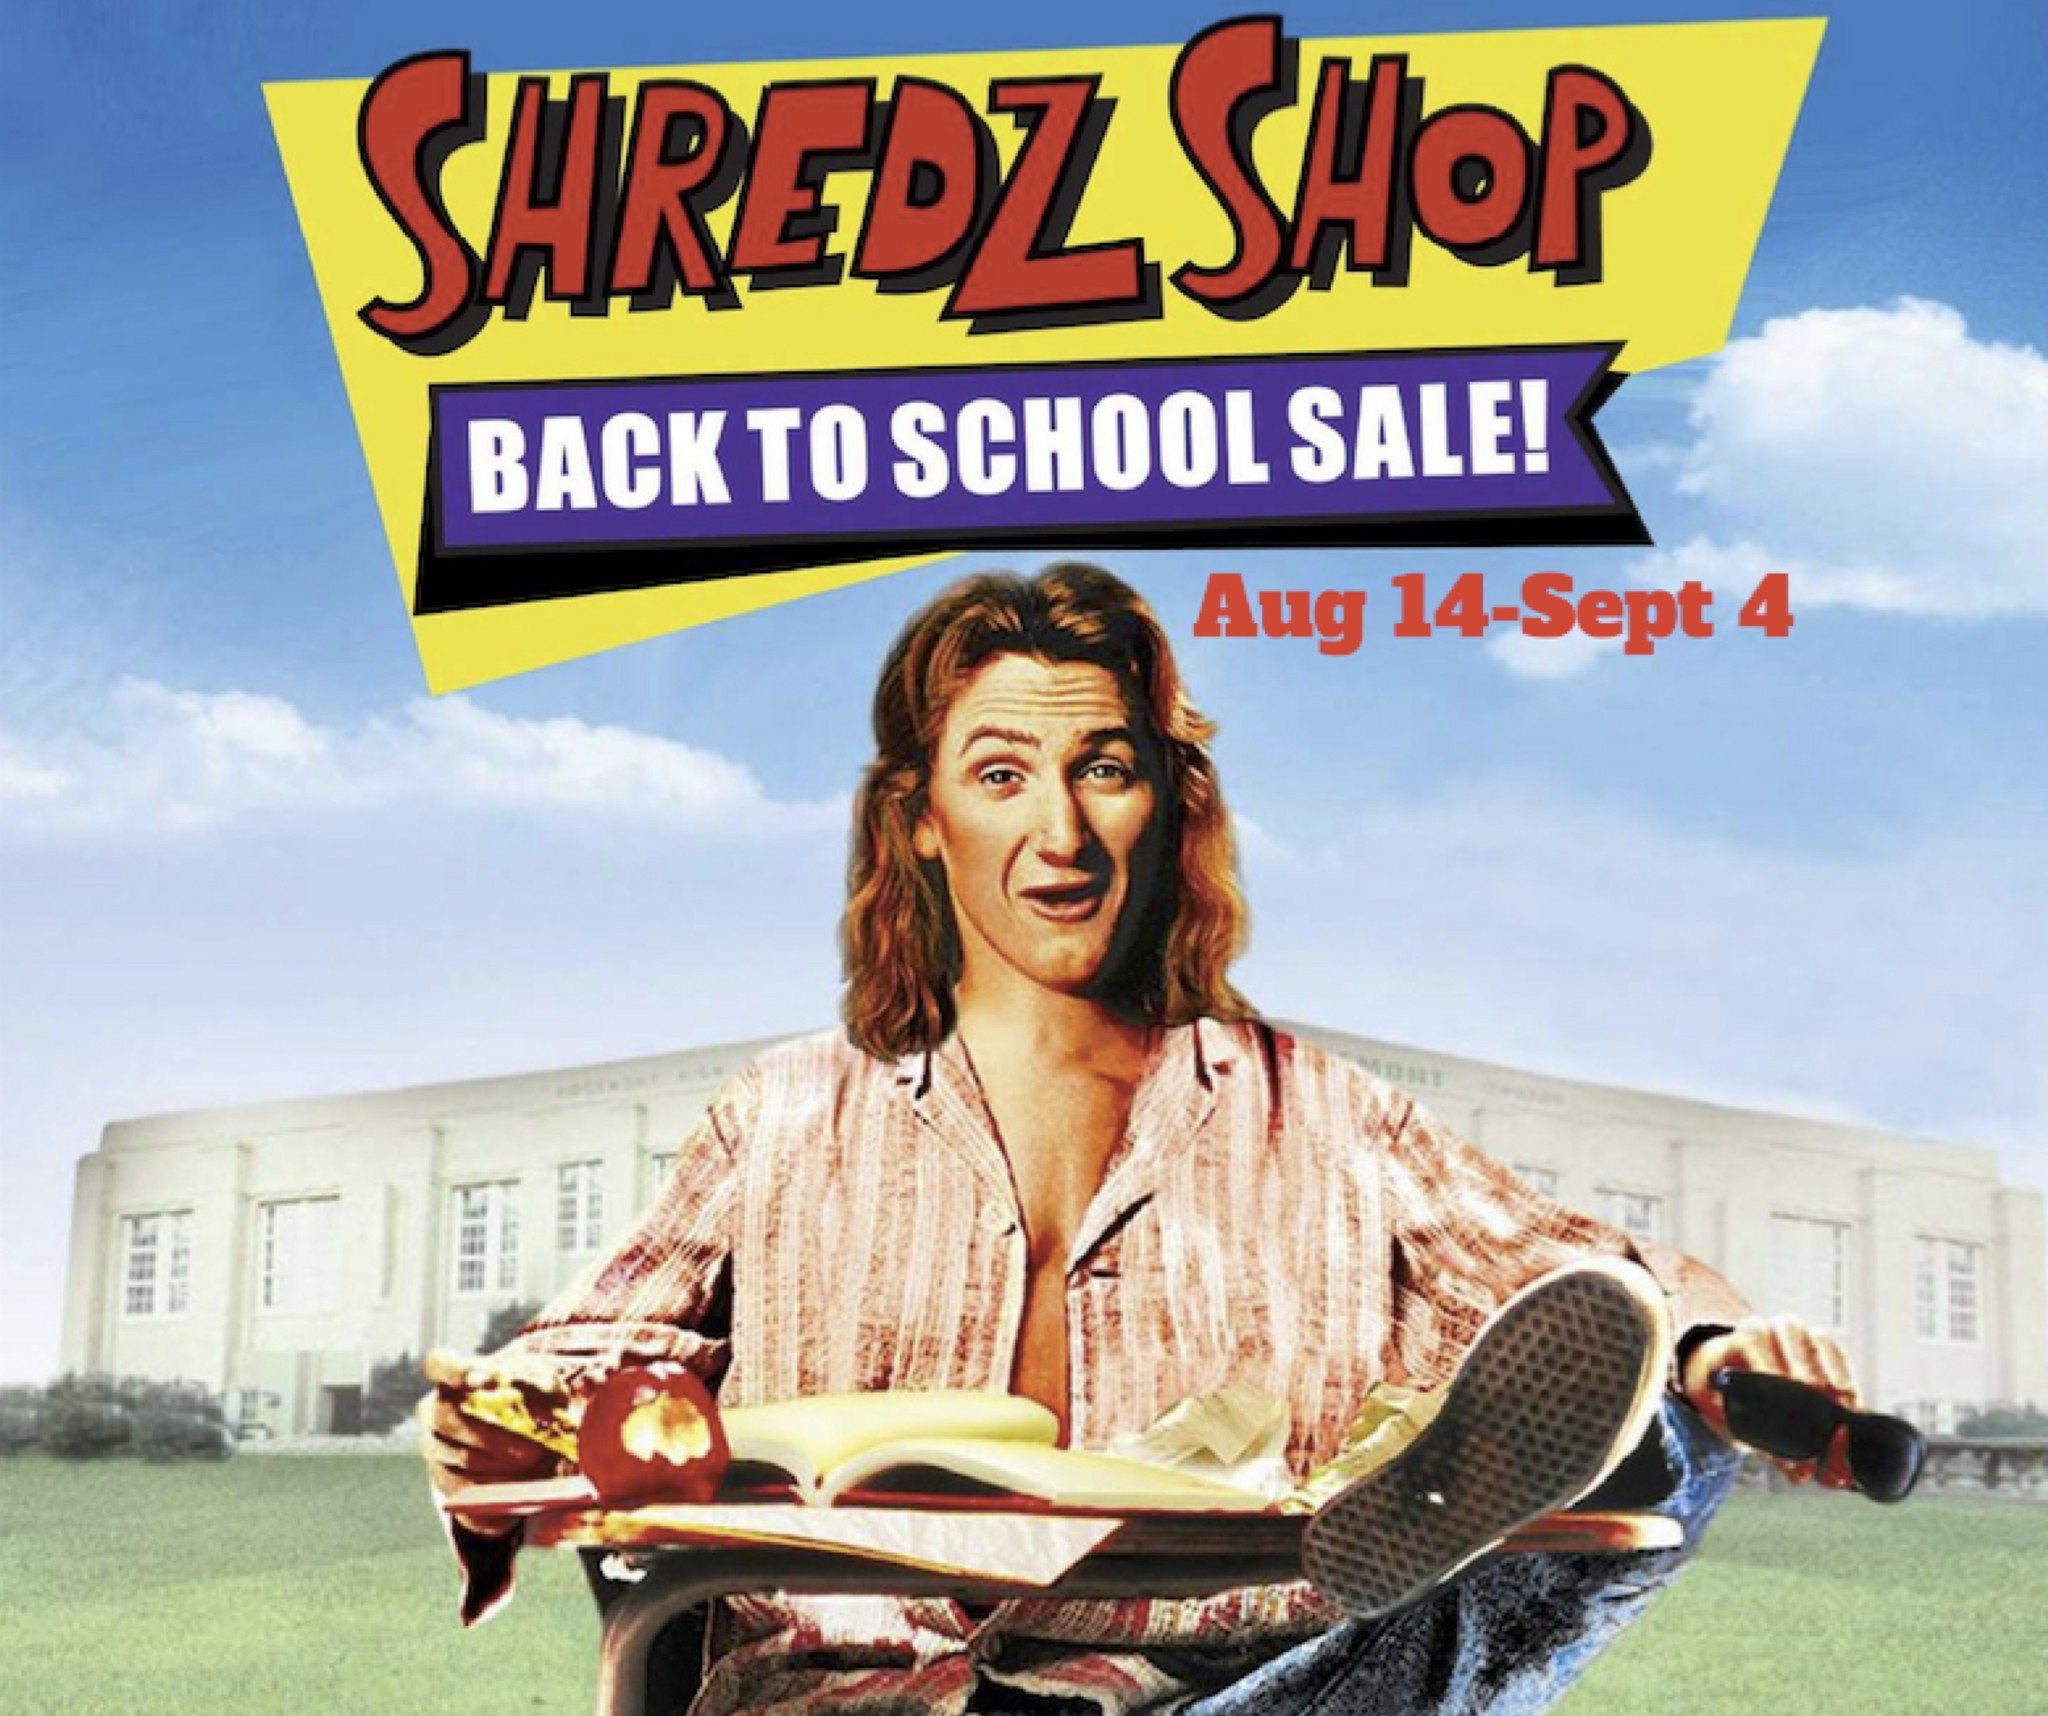 Back To School Sale Aug 14 - Sept 4